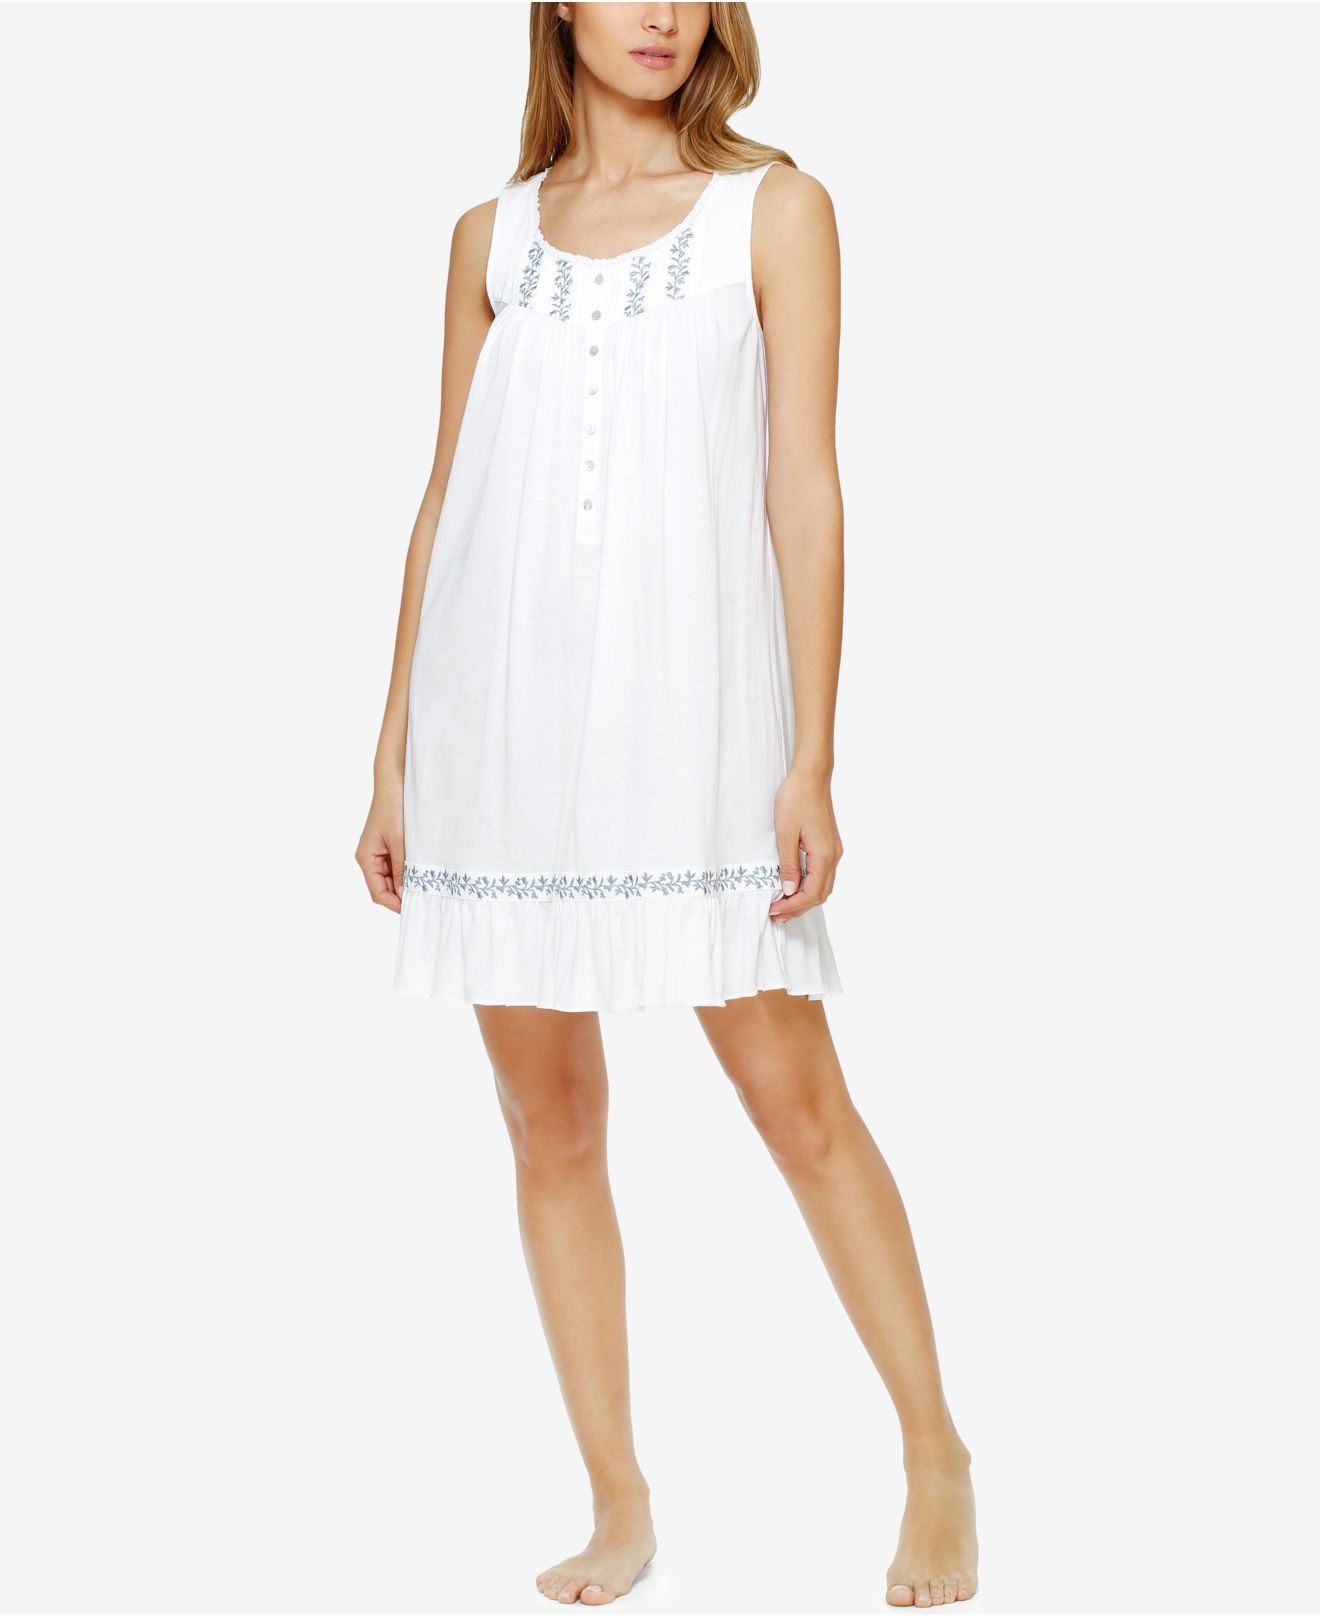 Lyst - Eileen West Embroidered Knit Nightgown in White e56125881